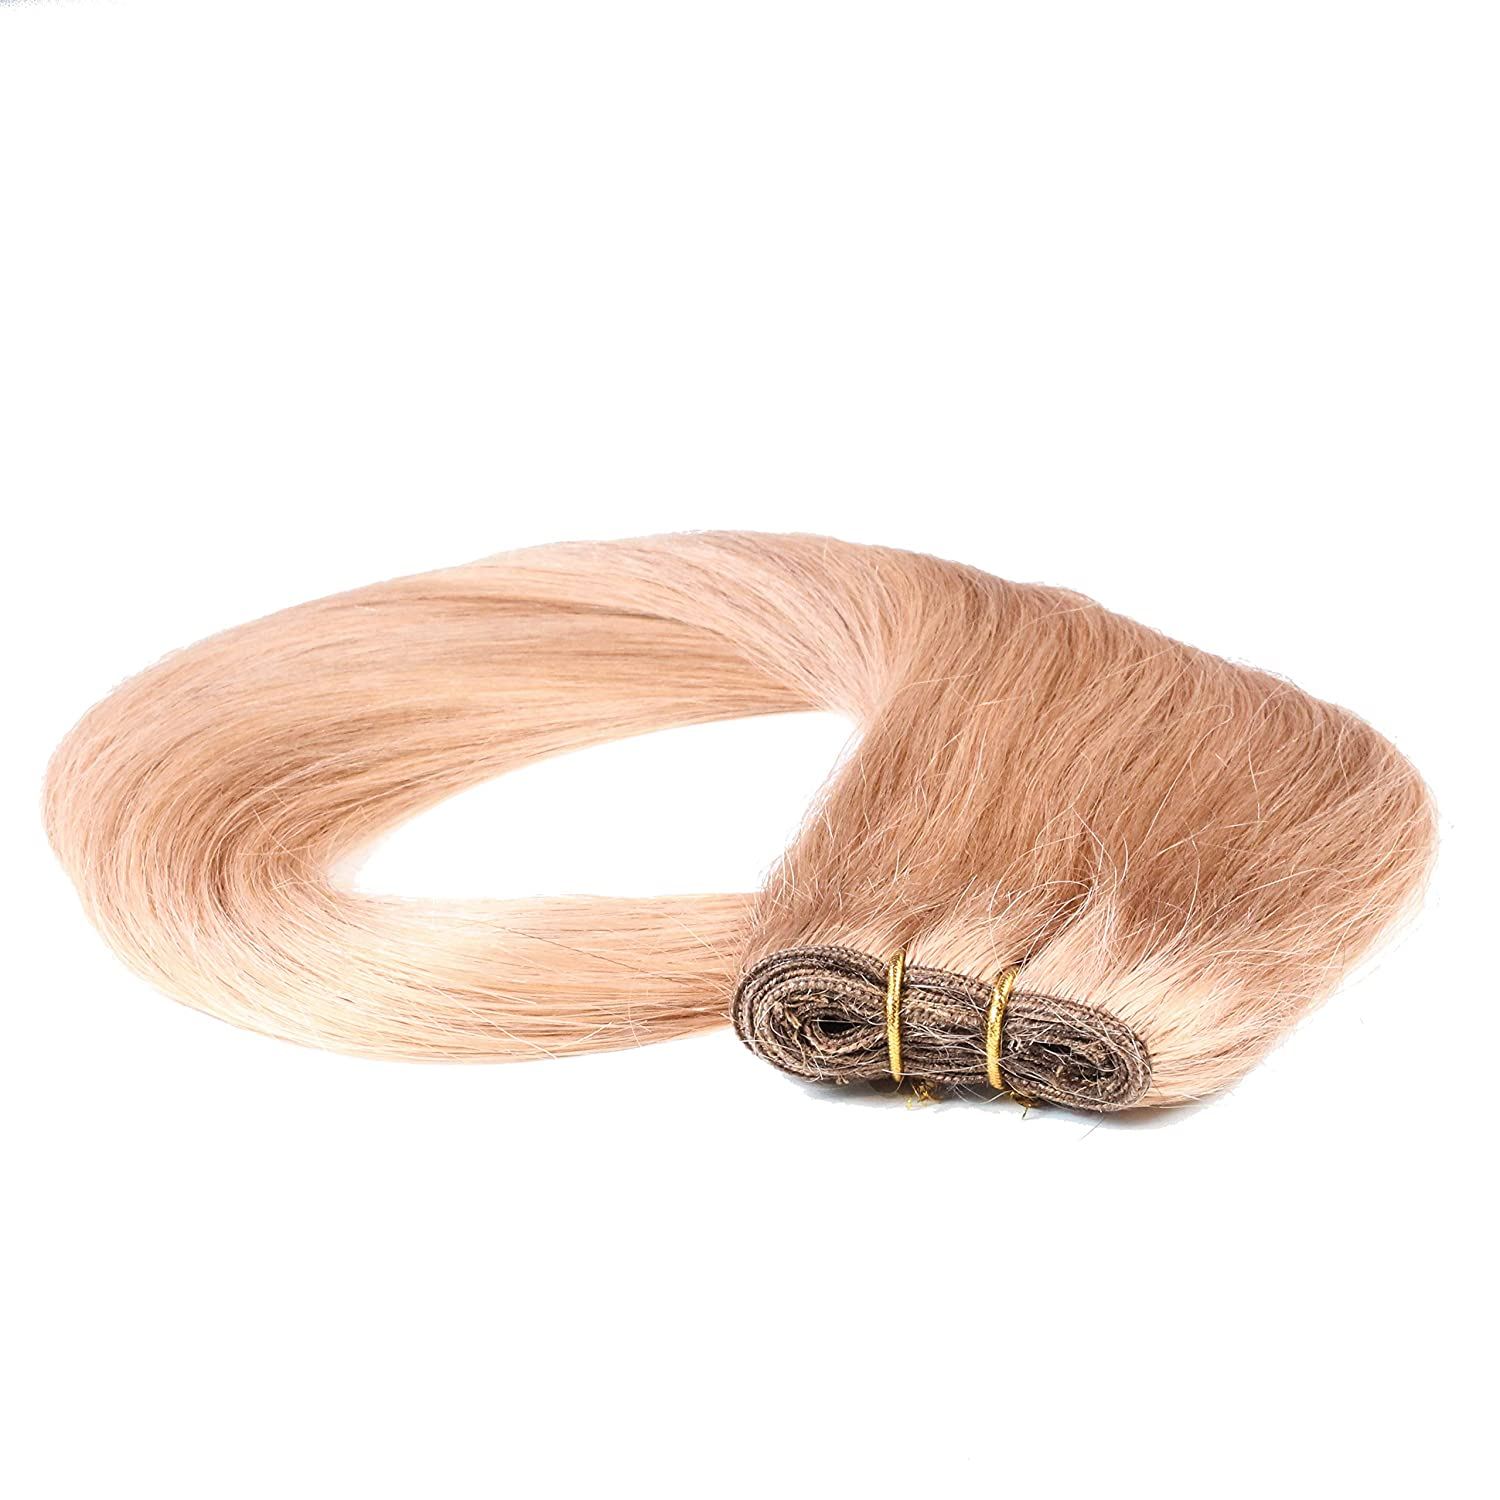 """Hair2Heart Human Hair Weave on Extension 28"""" colour #10 Super sale period Free shipping anywhere in the nation limited -"""